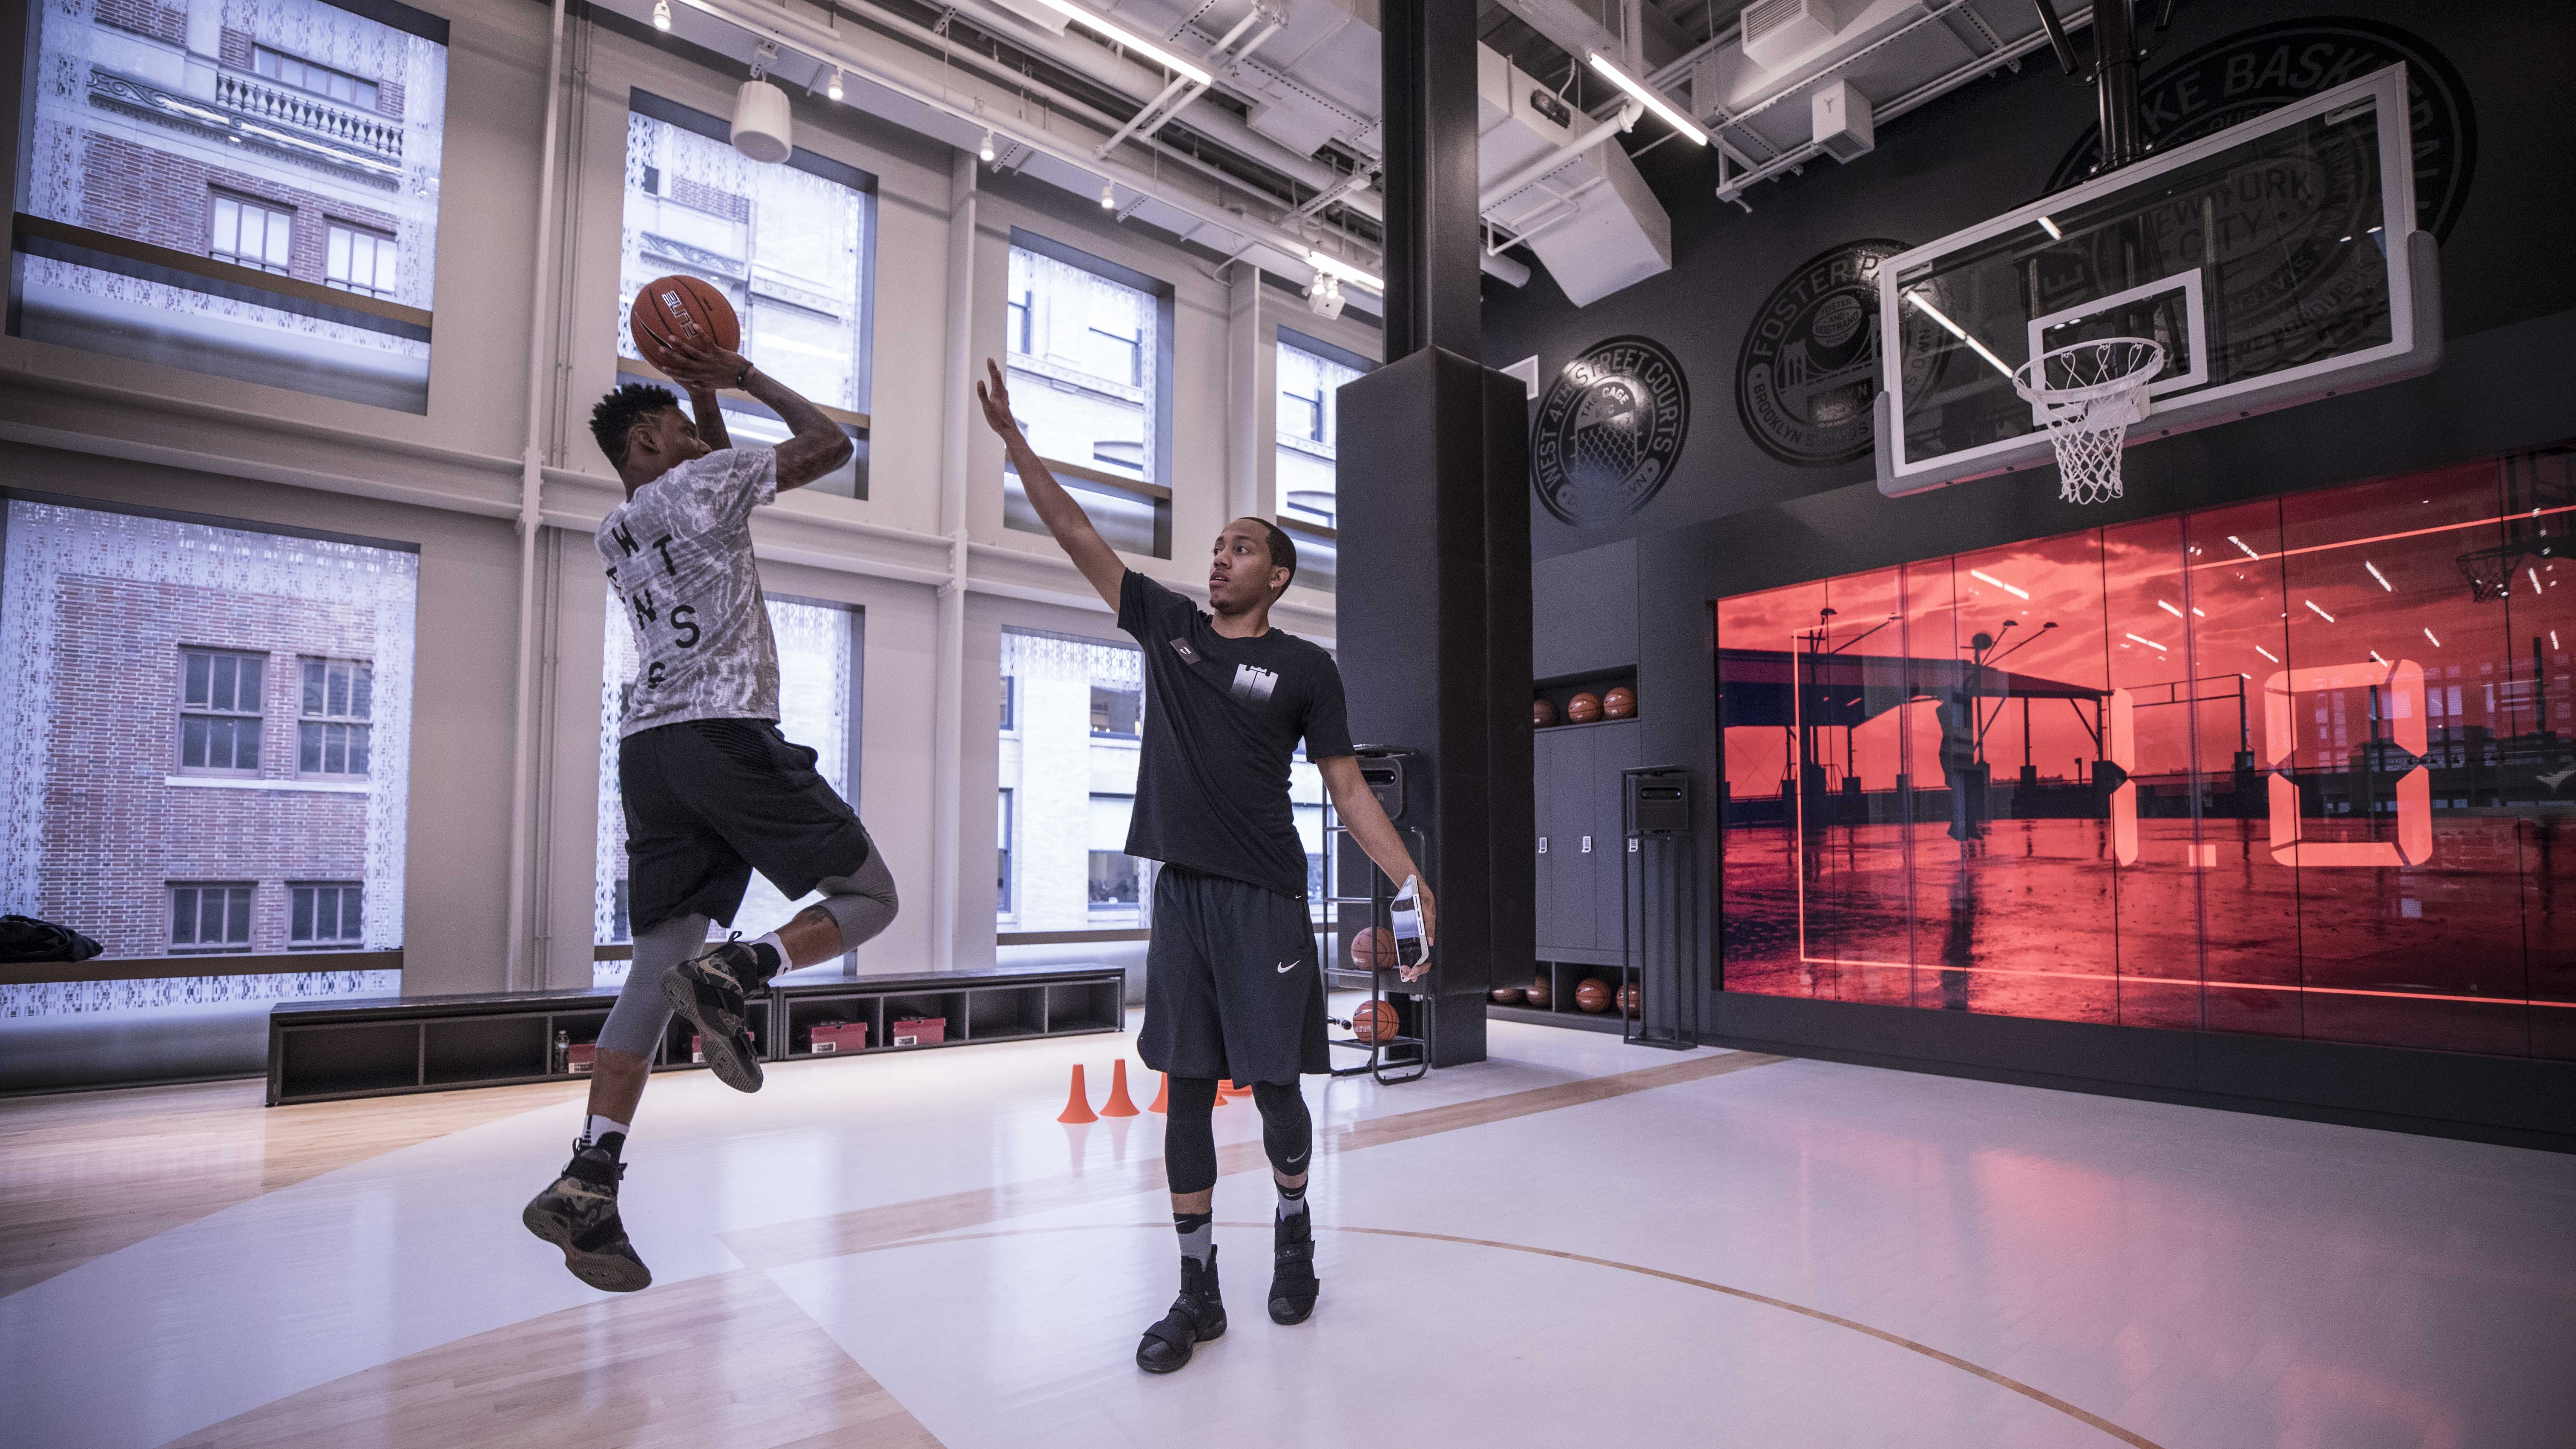 info for 9c238 fe241 Nike s new store in New York is like Legoland for people who love sports